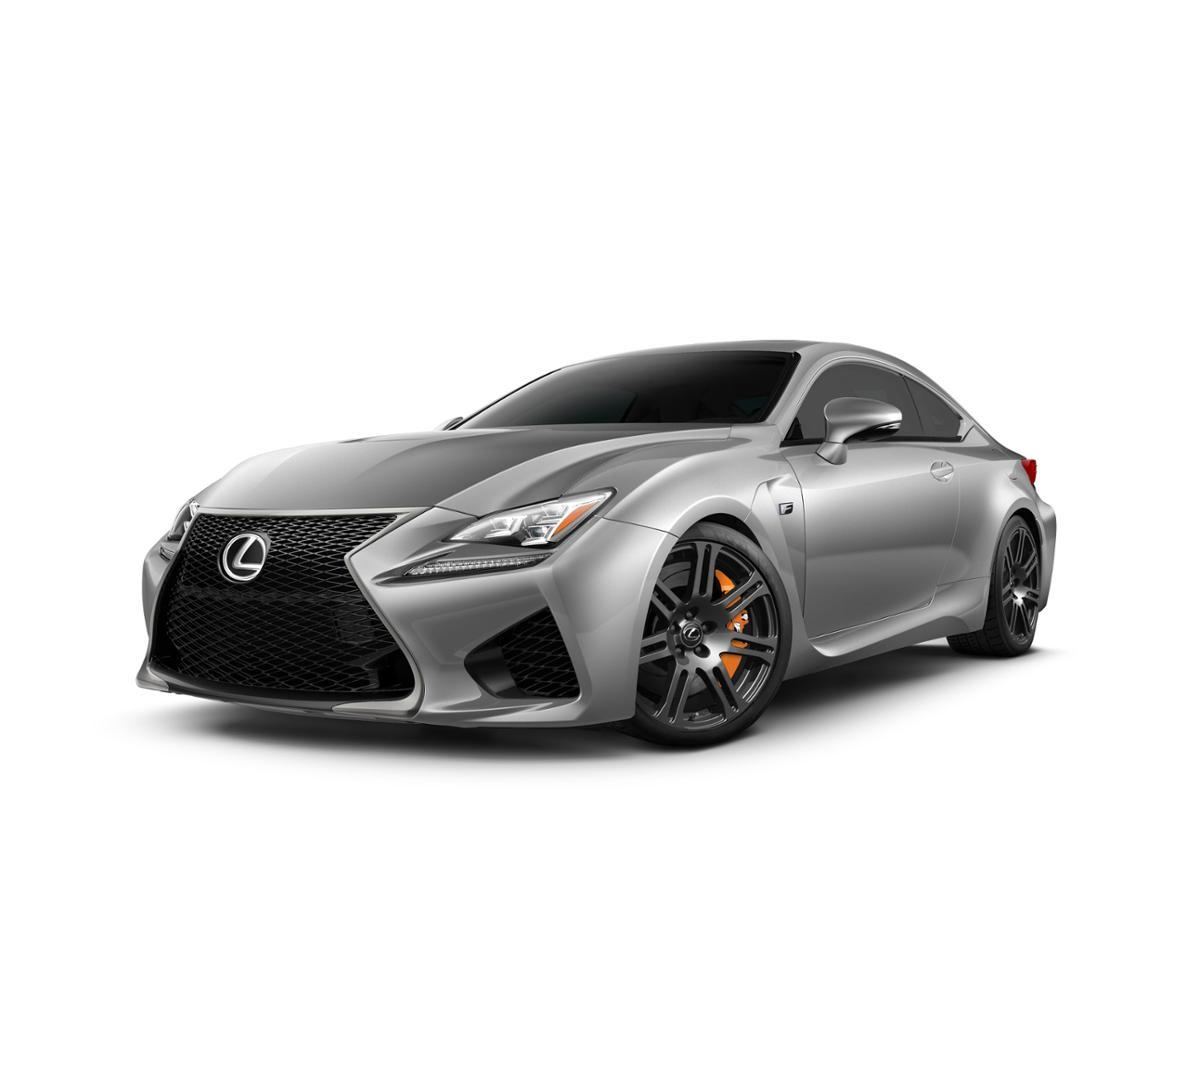 2017 Lexus Rc Exterior: Fort Worth New 2017 Lexus RC F Liquid Platinum: Car For